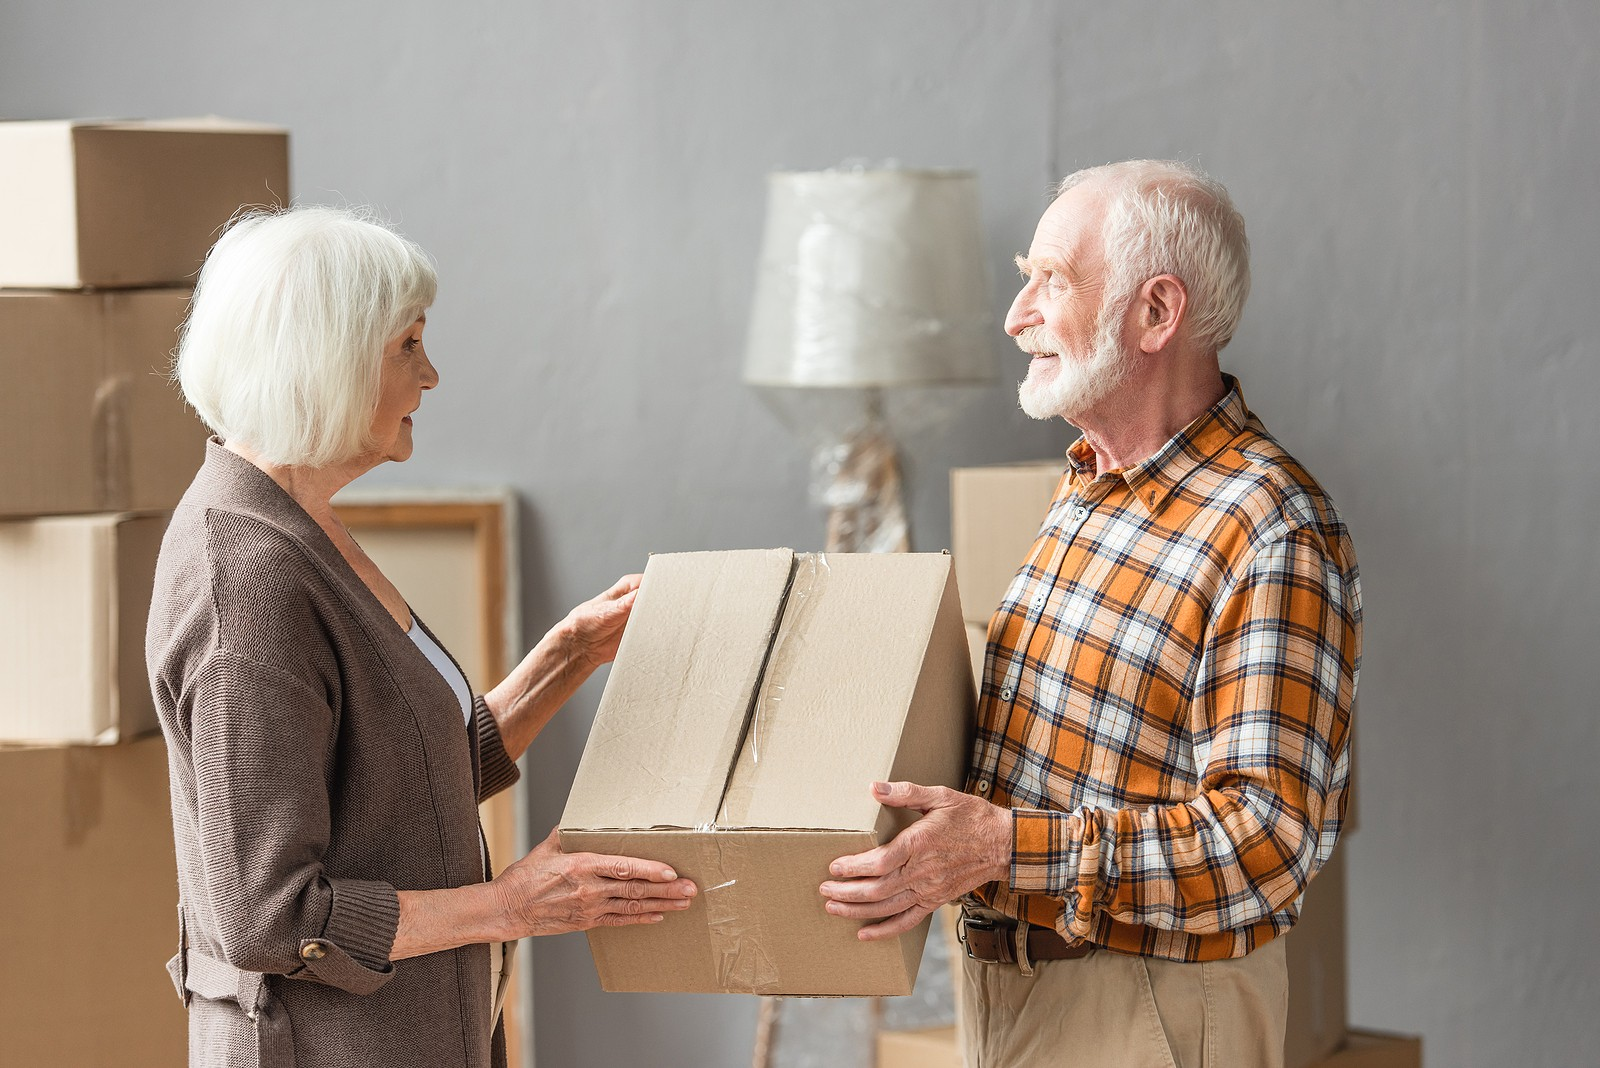 Senior couple downsizing and packing up belongings together